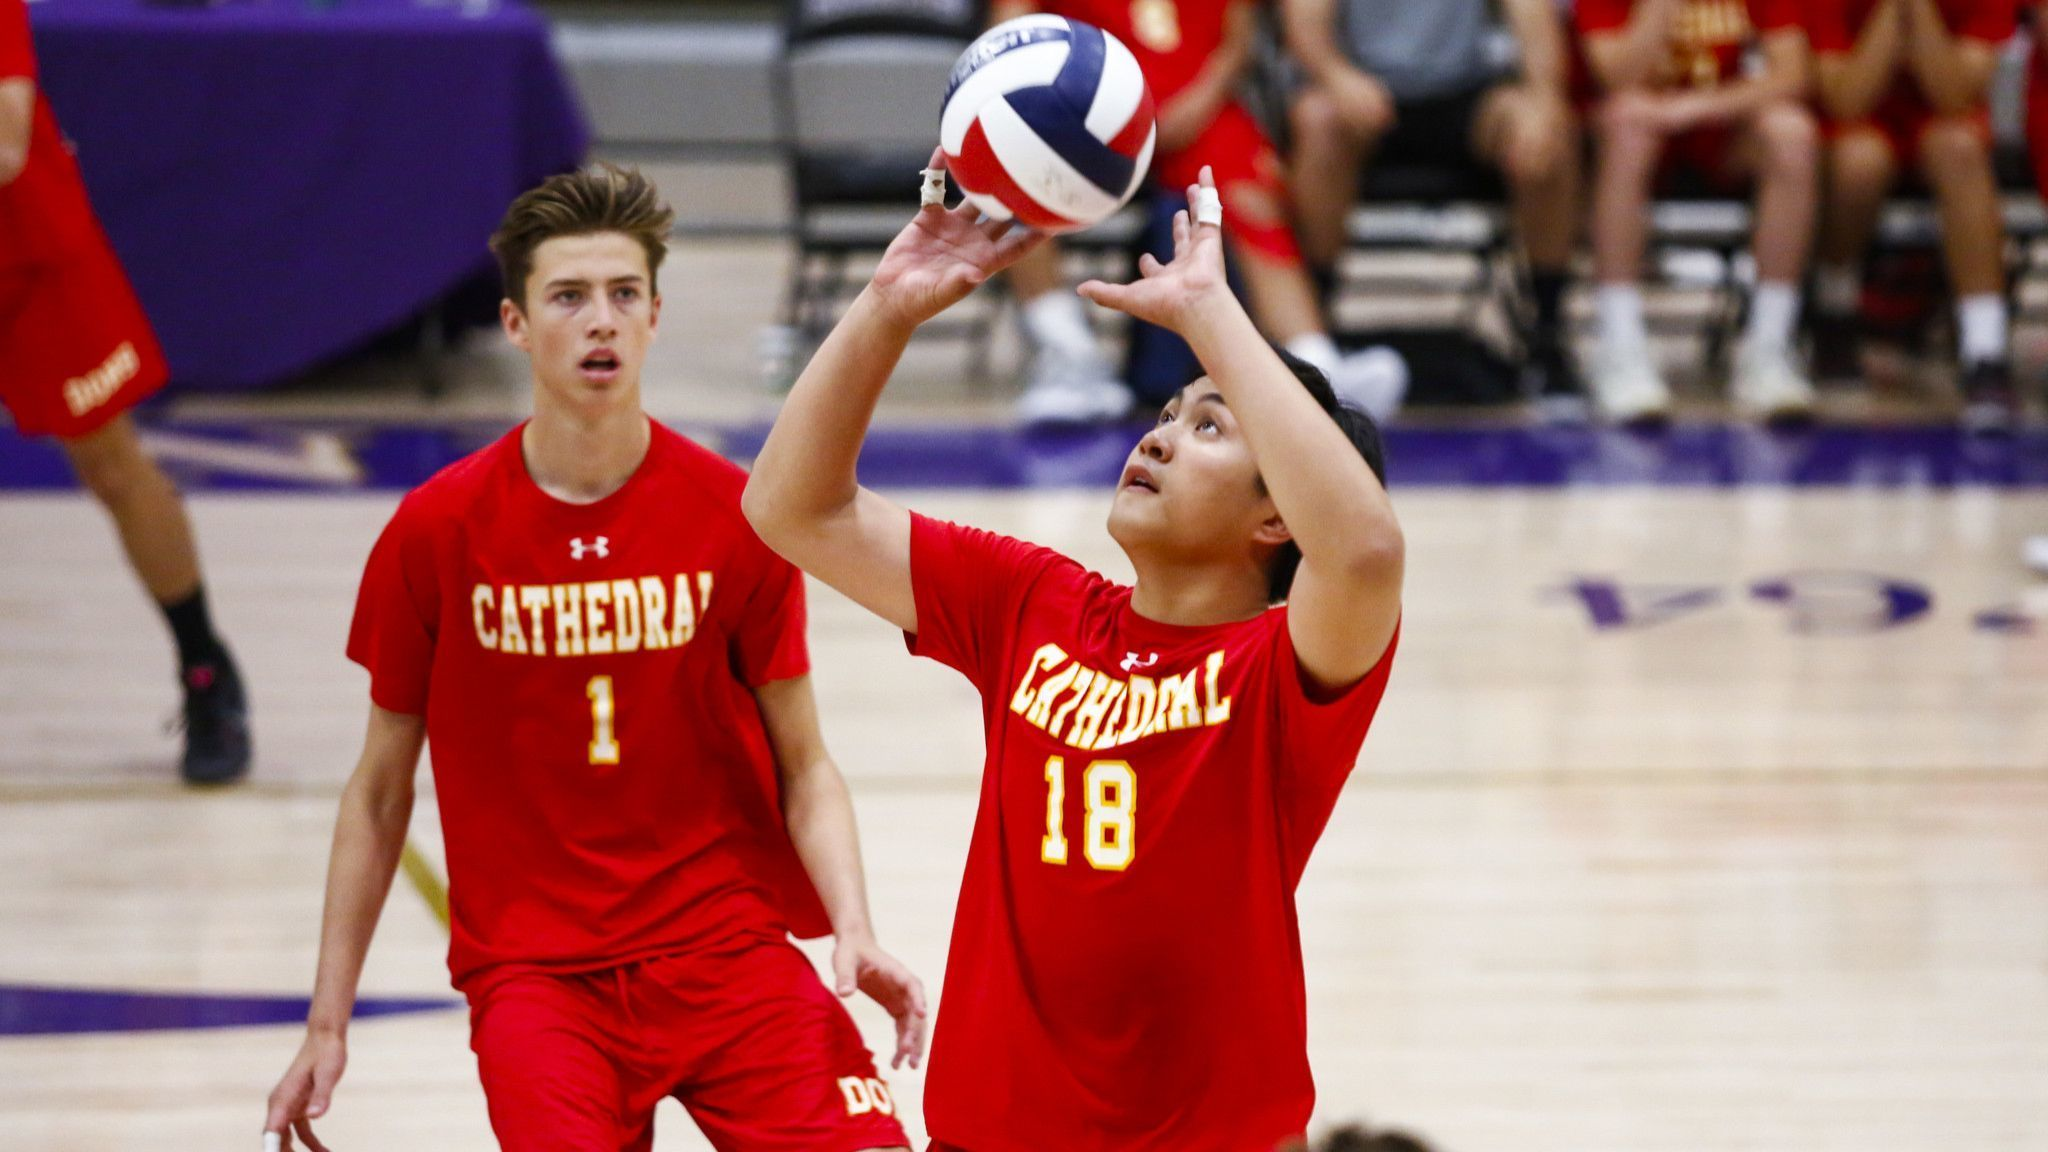 Cathedral's Kris Pua sets up a shot during the third set against Eastlake.